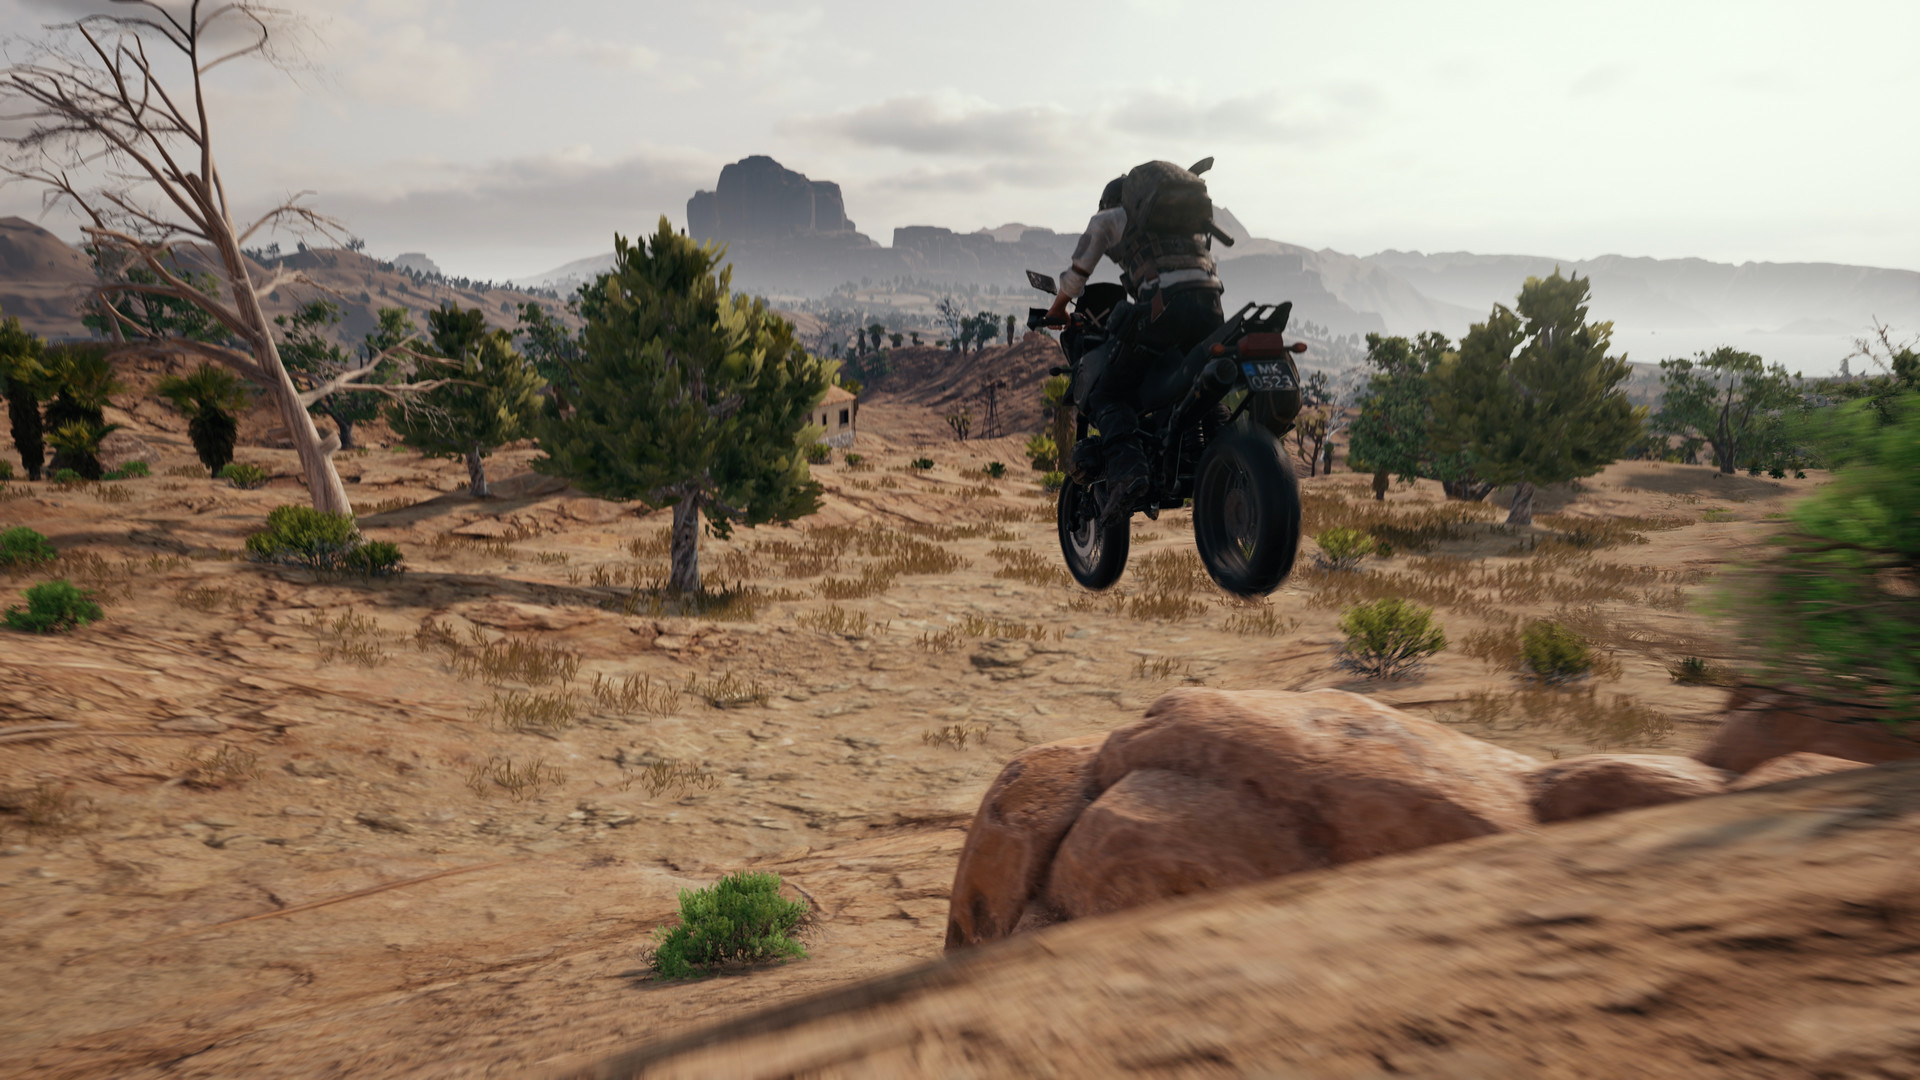 New PUBG Anti-Cheat Tools Delayed By 'Unexpected Issue